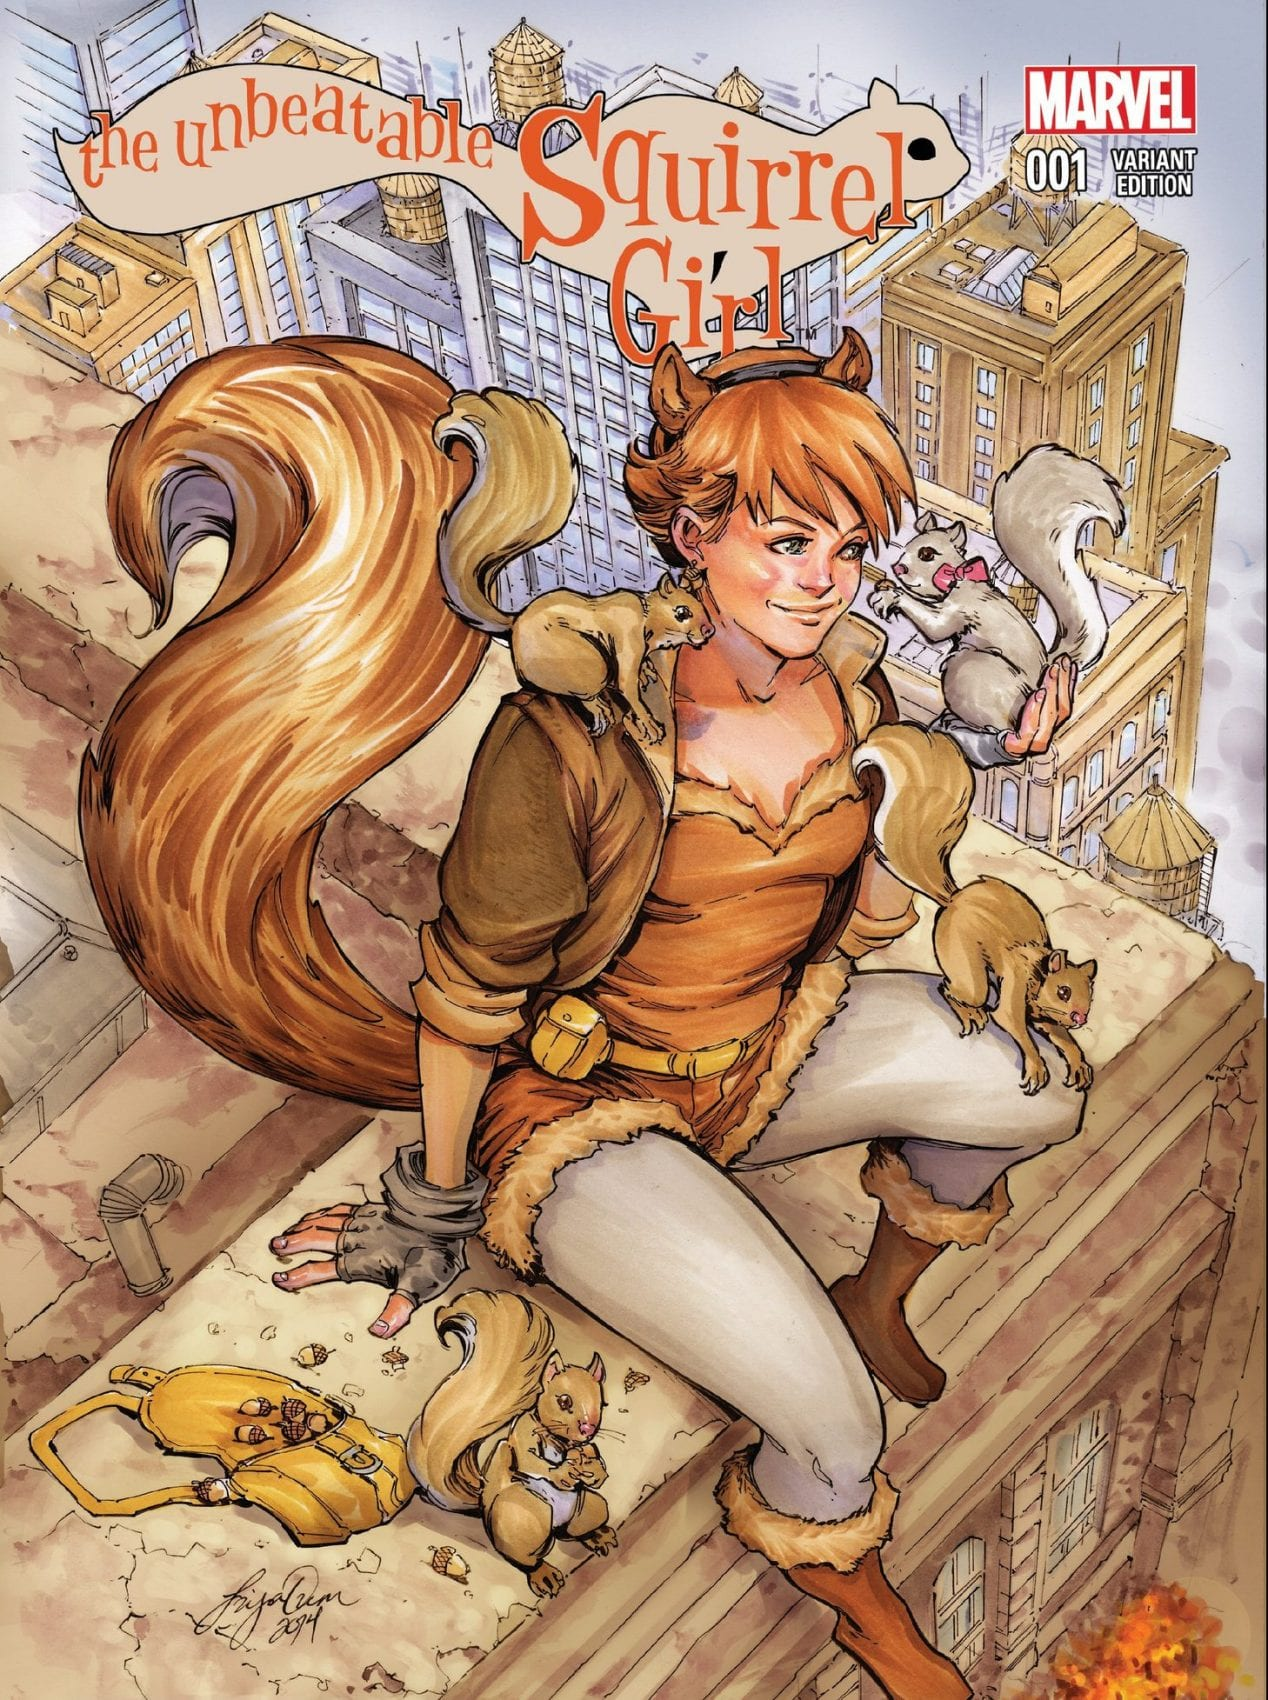 NEWS – Squirrel Girl